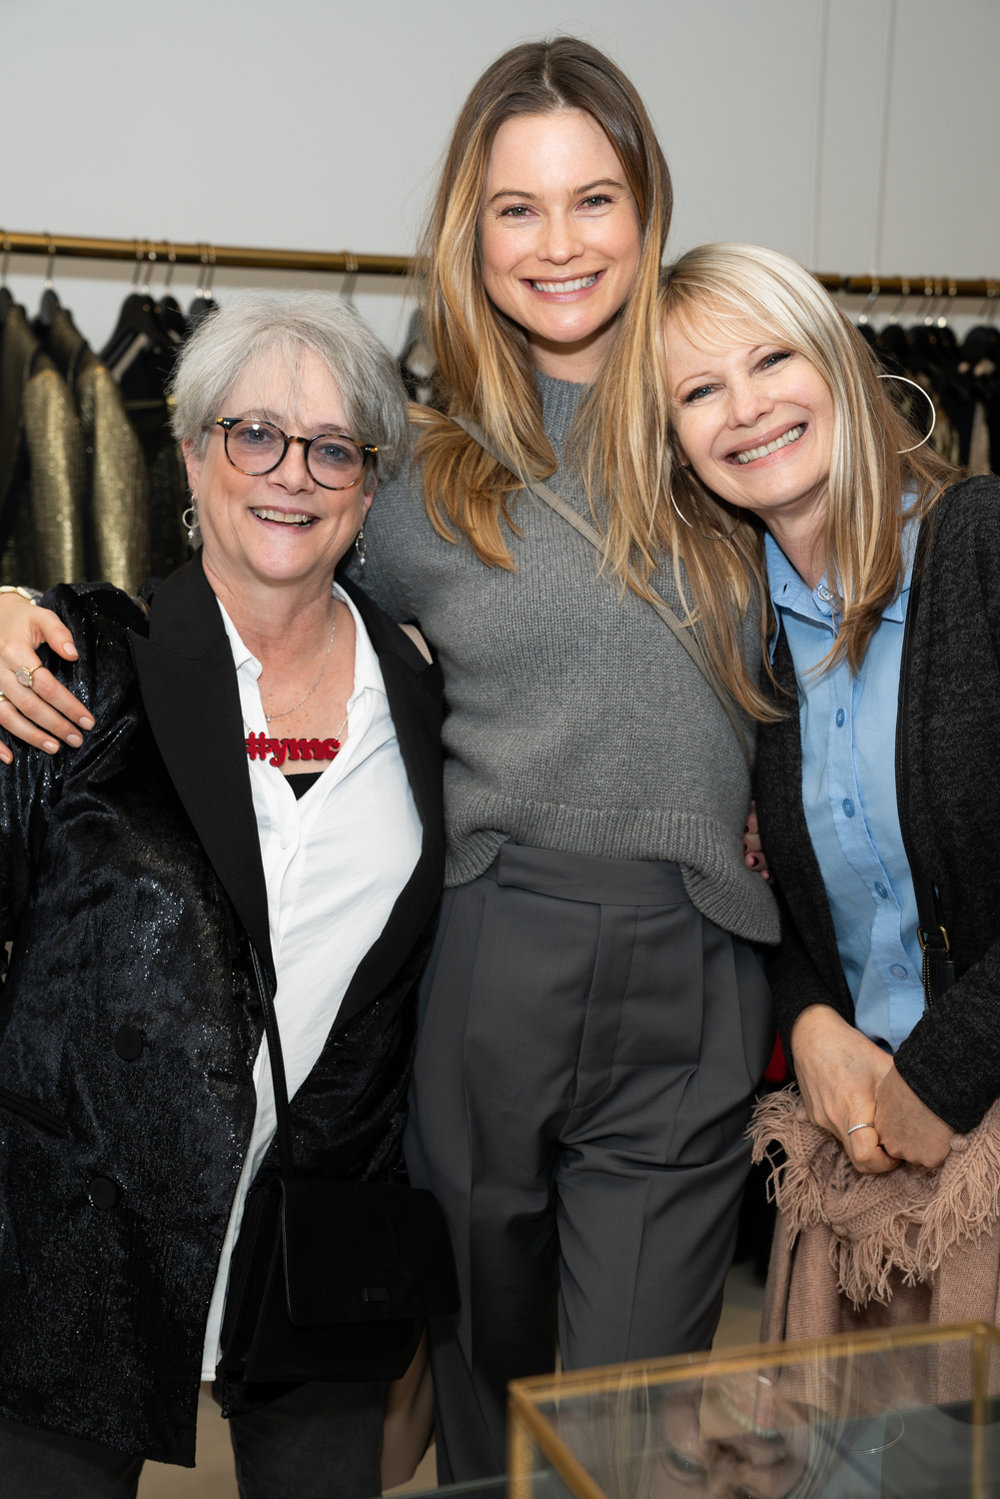 Cofounder Patsy Noah with Behati and Magda Prinsloo